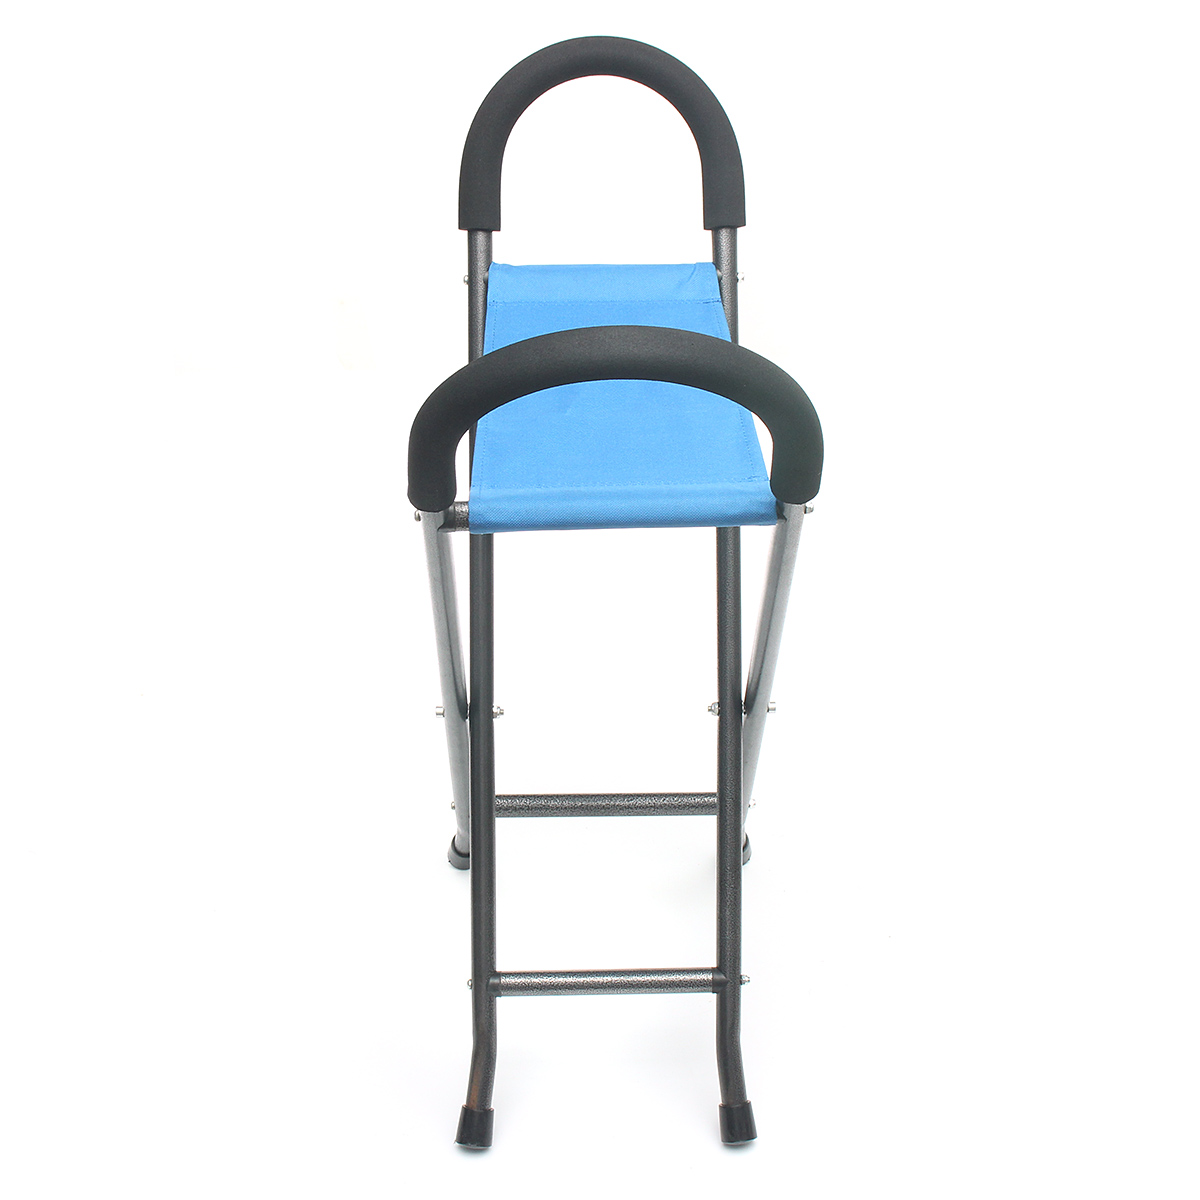 Walking Chair Tables Ipree Multi Function Folding Pyramid Walking